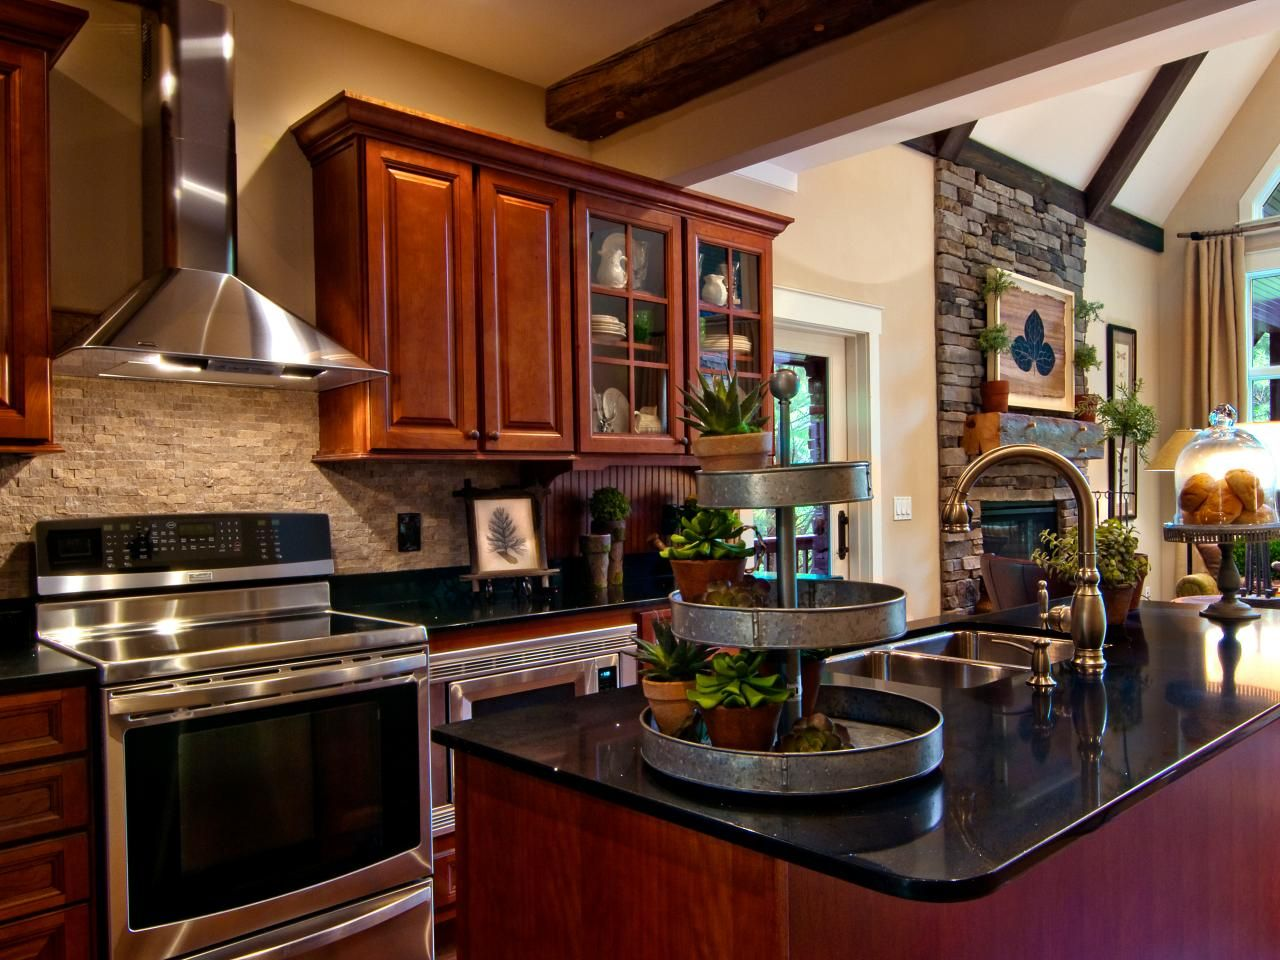 Vote on your favorite diy network blog cabin kitchen from to